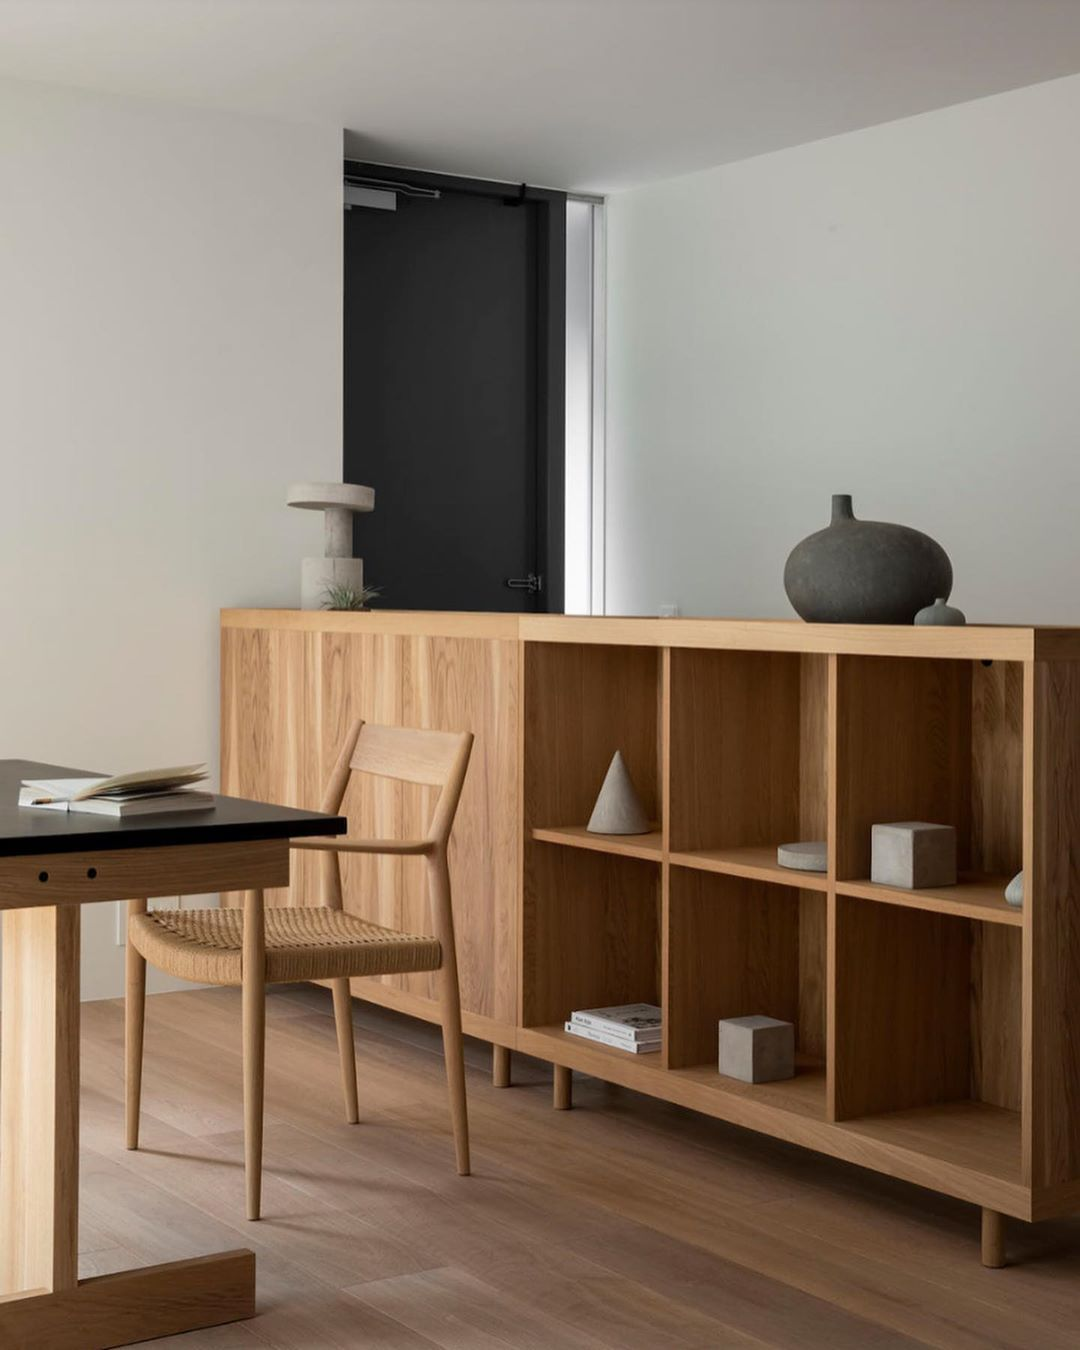 Pin By Christie Tyler On Interiors In 2020 Minimal Apartment Storage Furniture Design Norm Architects